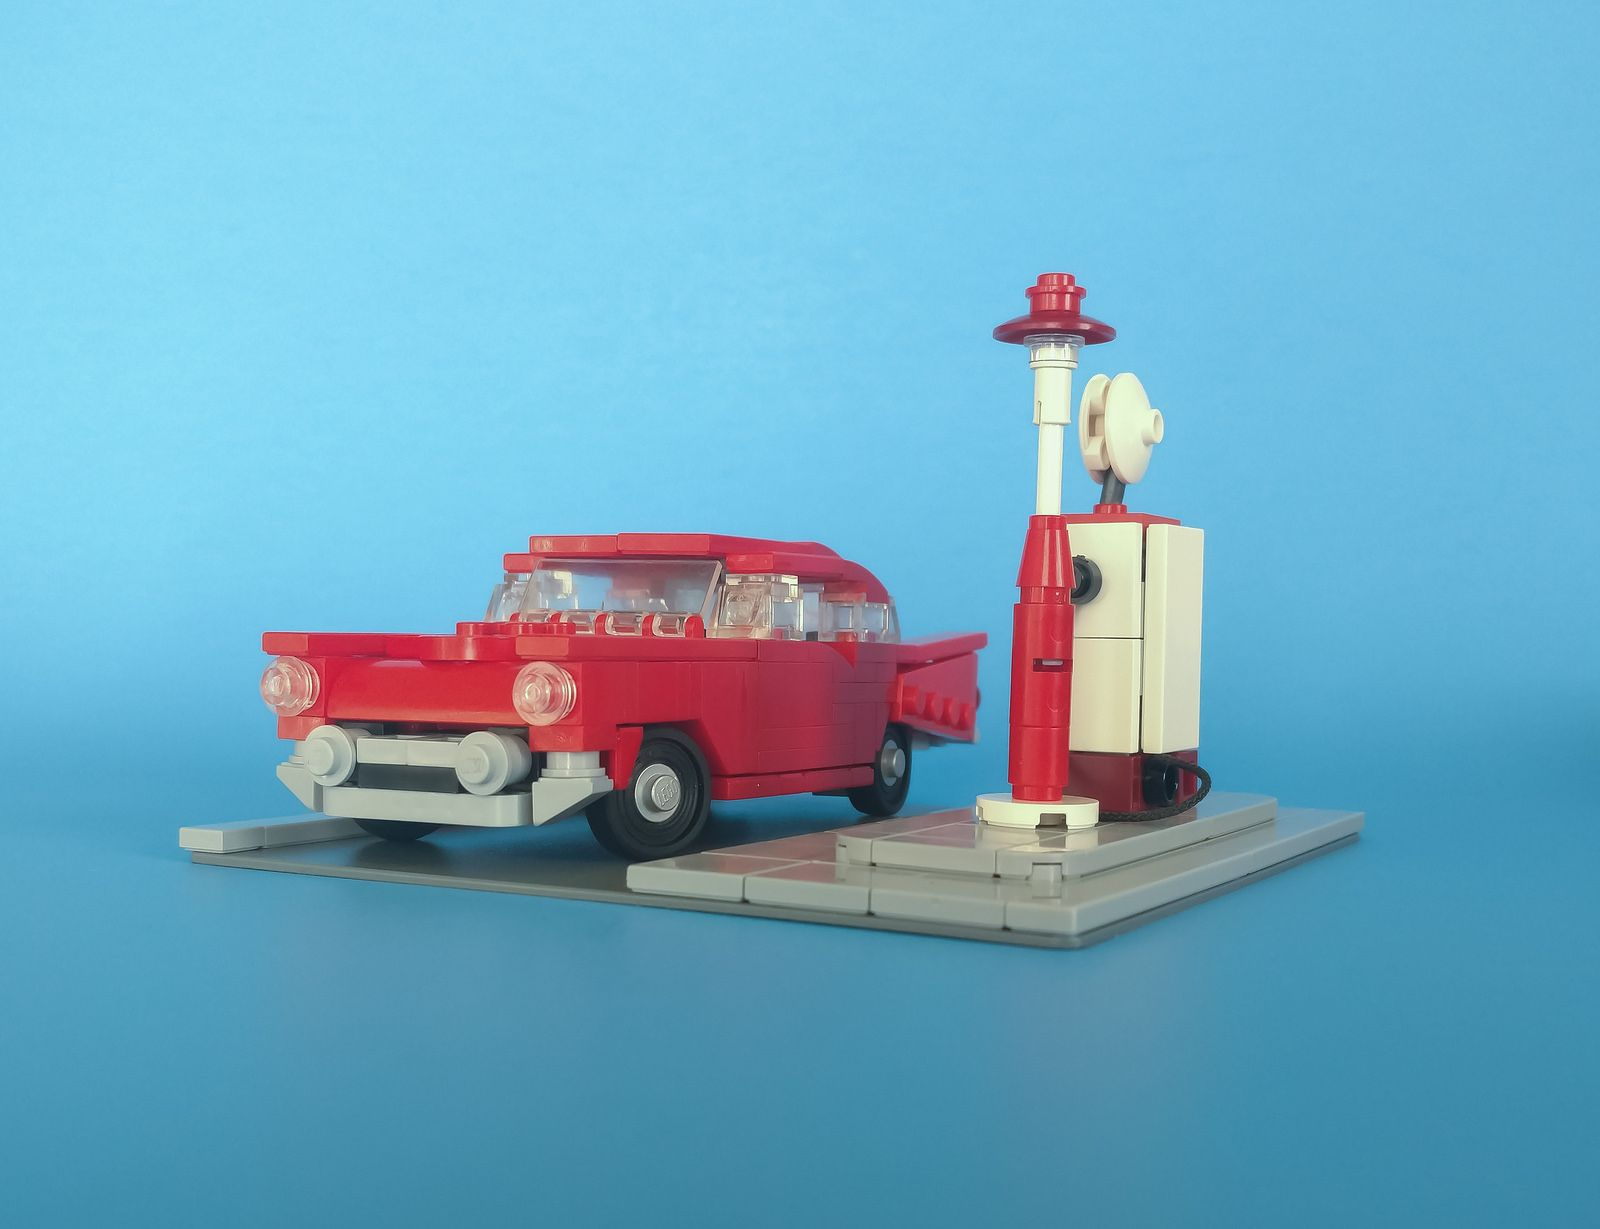 57 Chevrolet Bel Air Lego Pictures Lego Cars First Car